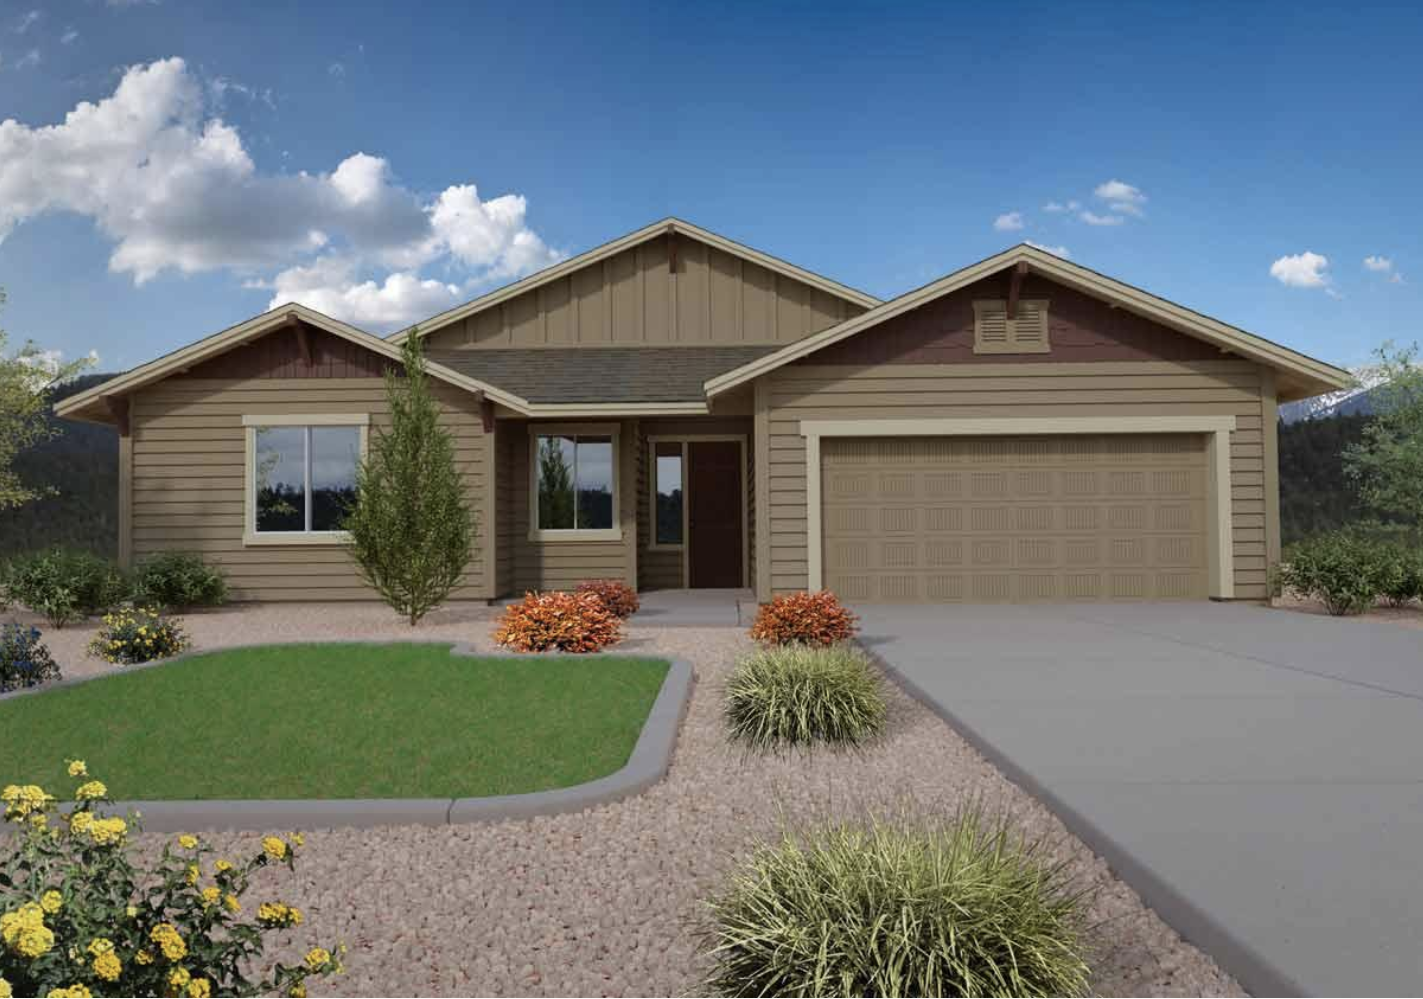 Finished Flagstaff Meadows Home in Bellemont, AZ